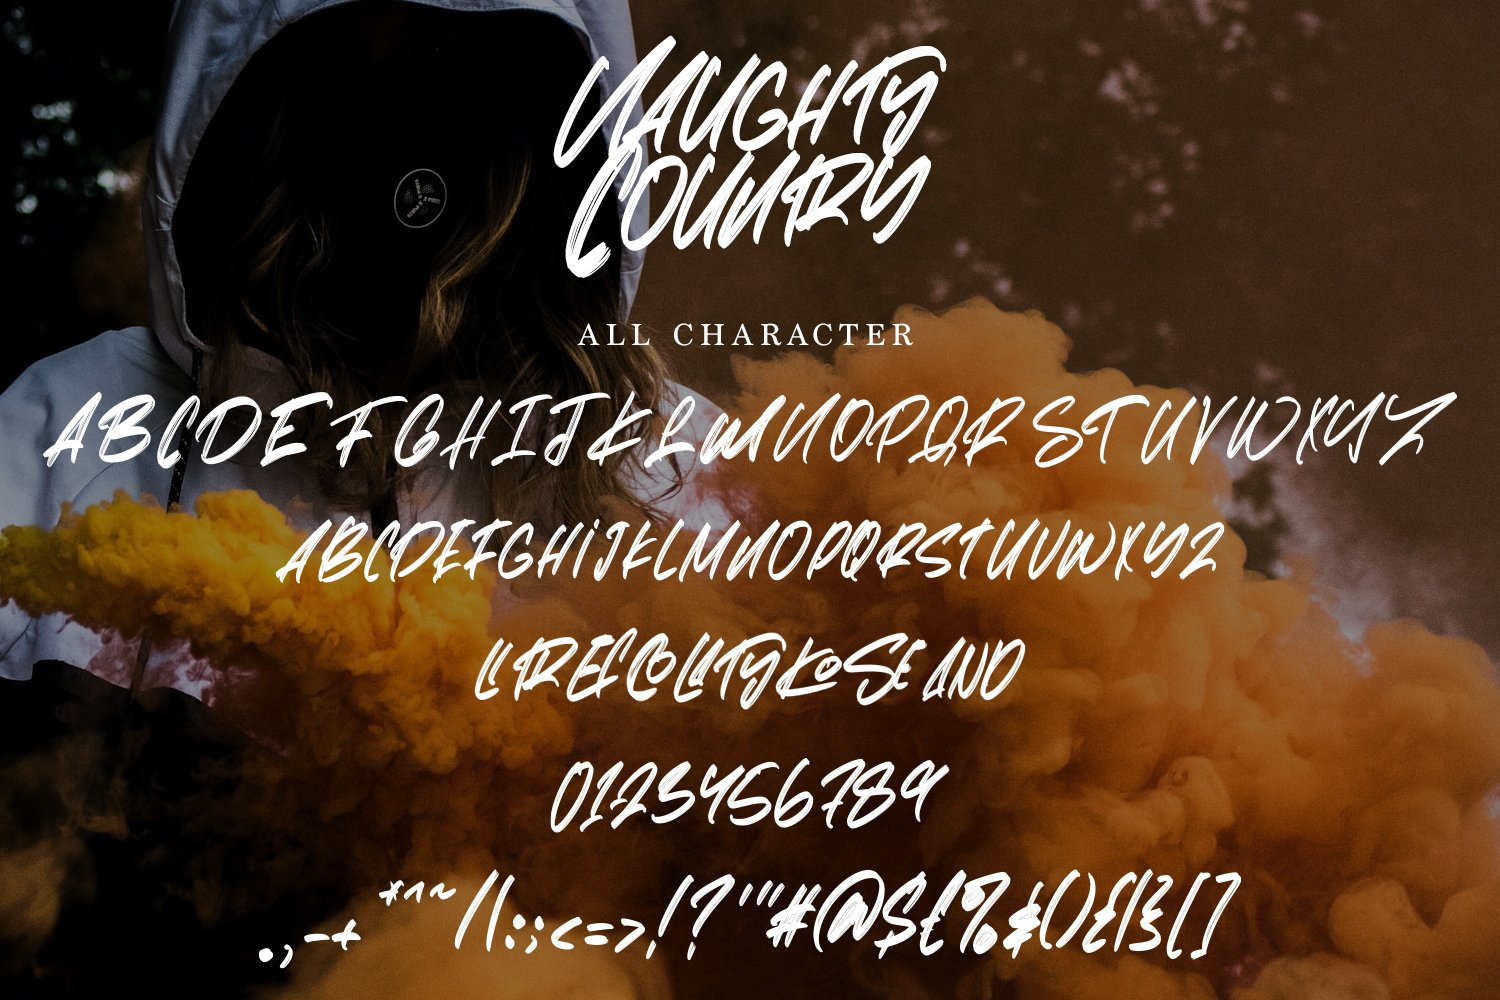 Naughty Country - Hand Lettered Brush Font example image 5